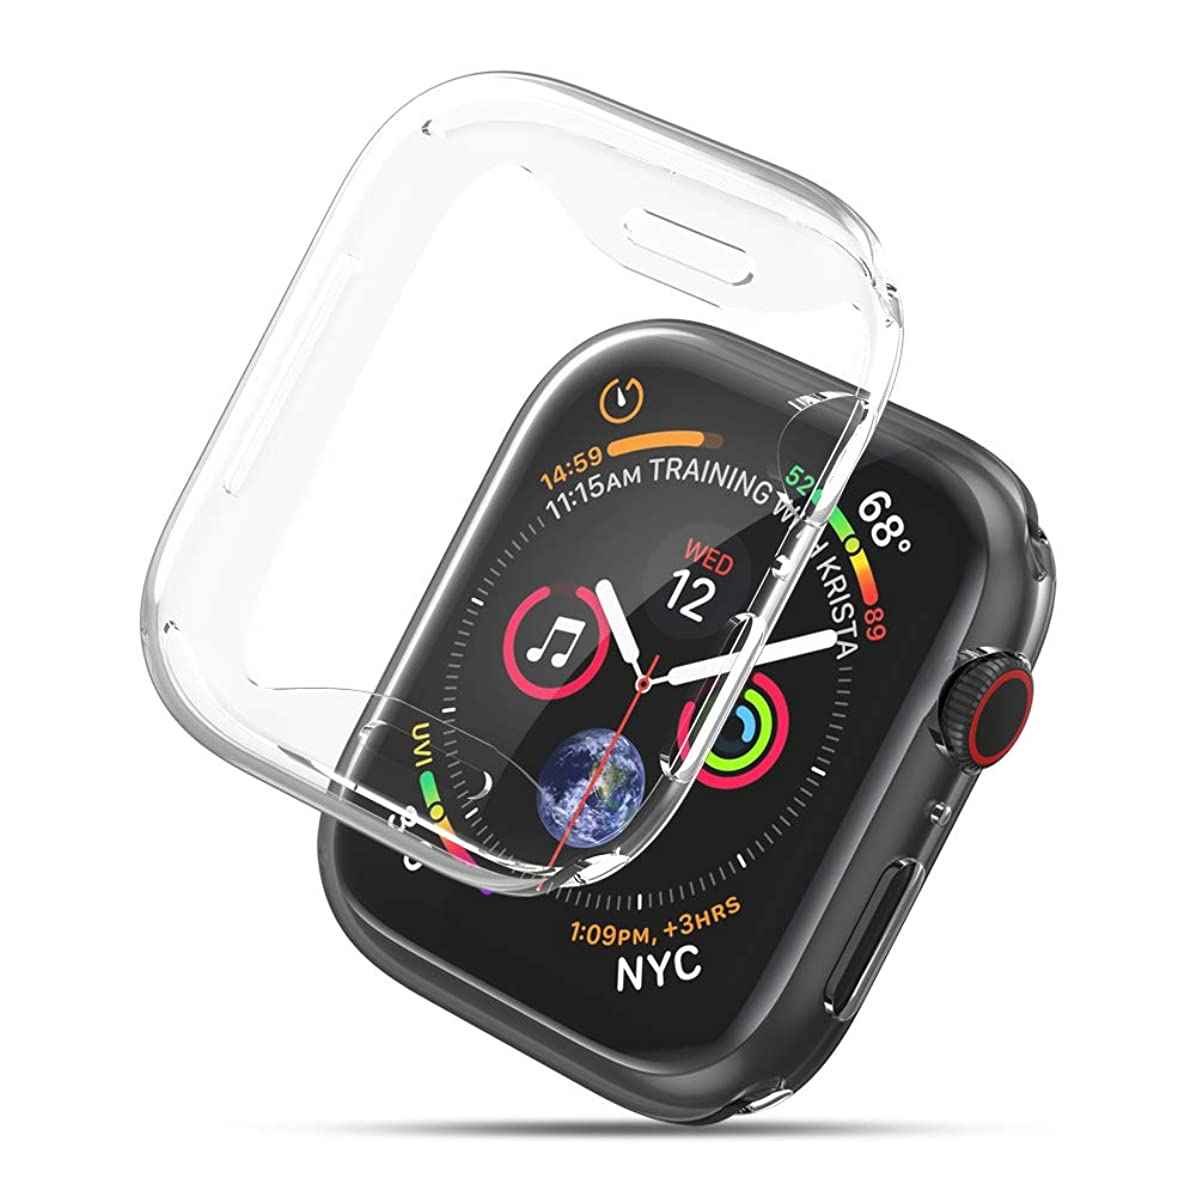 UGREEN Case Compatible with Apple Watch Series 4 Full Cover Screen Protector 2 Pack Clear Protective Soft TPU Ultra Thin 44mm iWatch 4 Case Crystal Anti Scratch All Around Protection